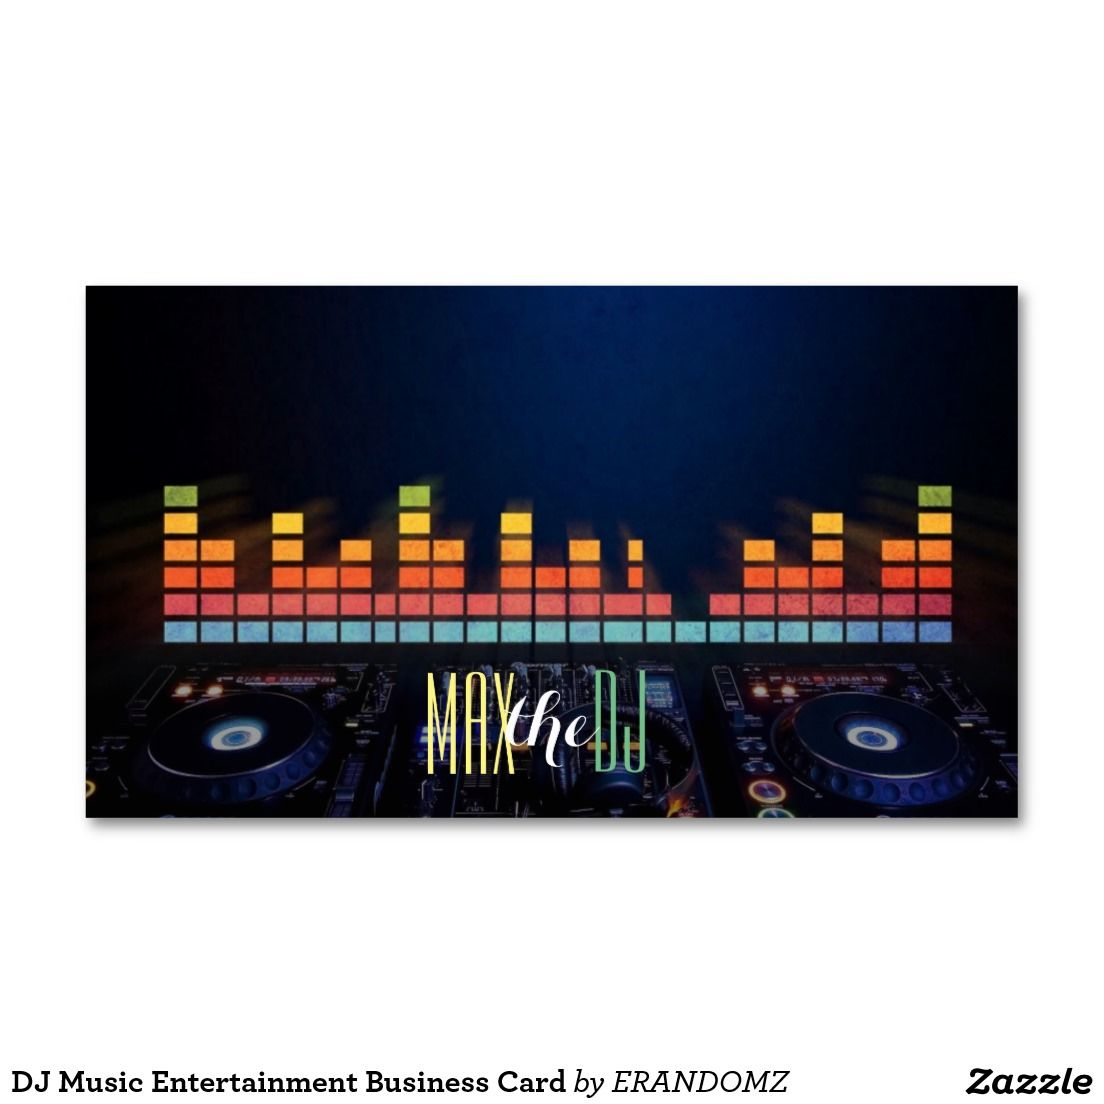 Dj music entertainment business card dj business cards pinterest dj music entertainment business card reheart Image collections